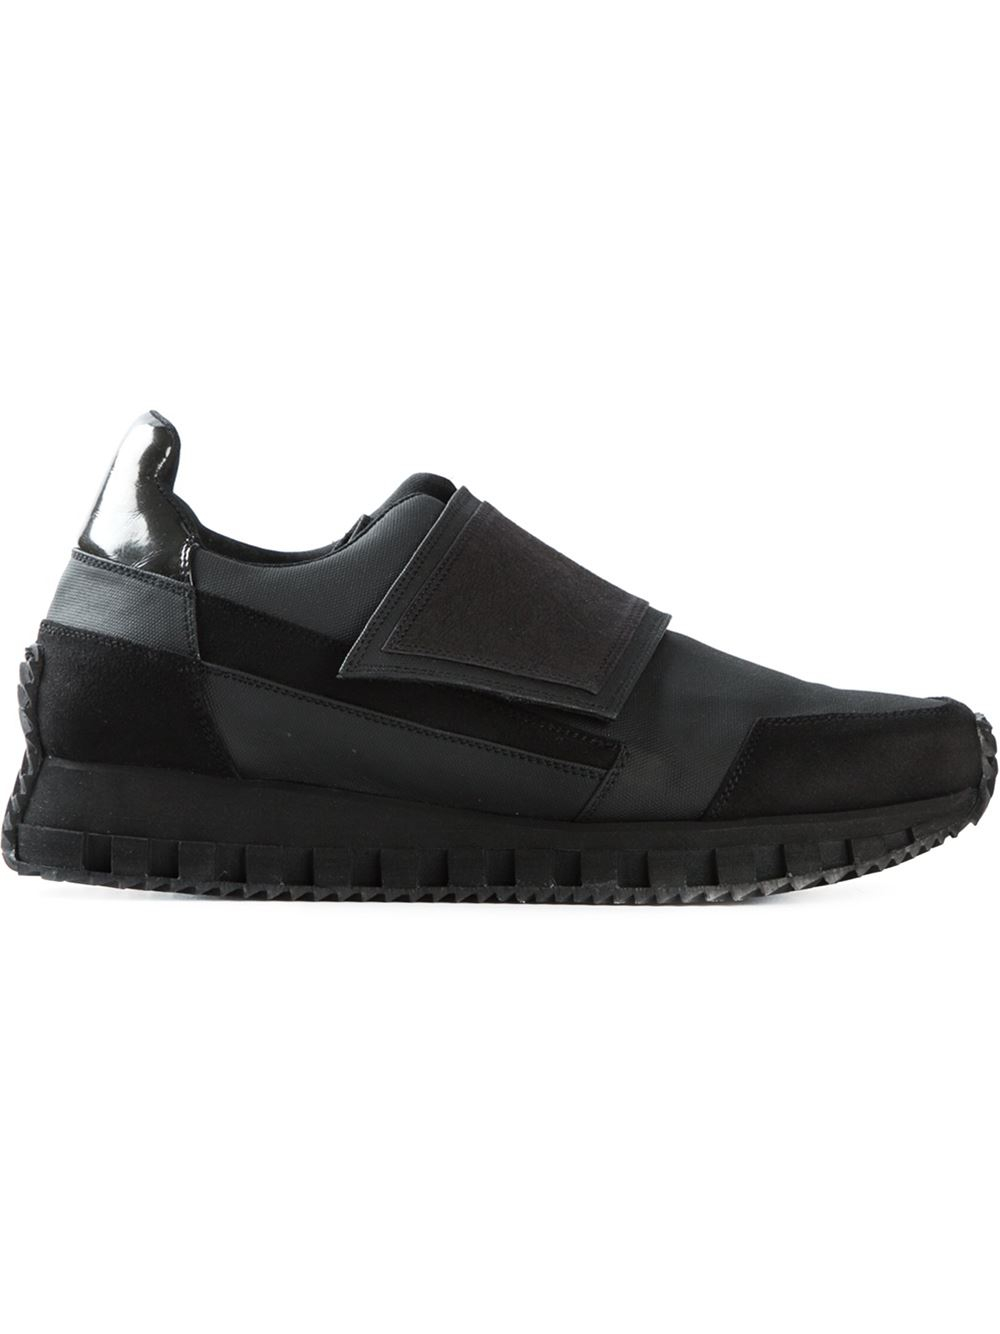 Mens Black Velcro Fastening Shoes